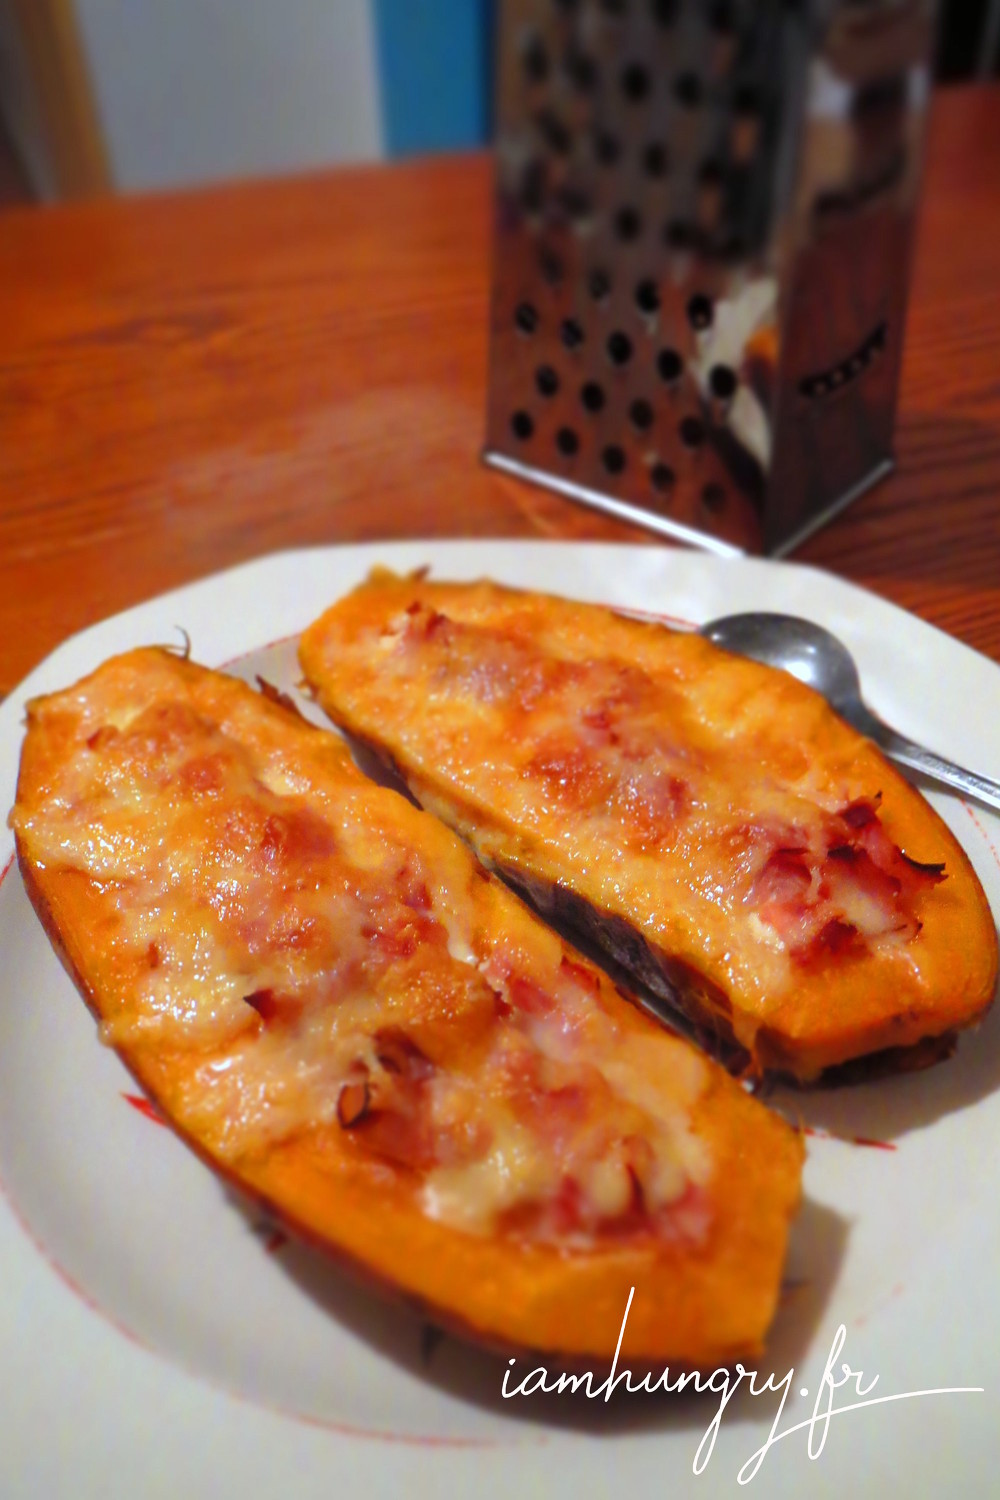 Patate douce farcies